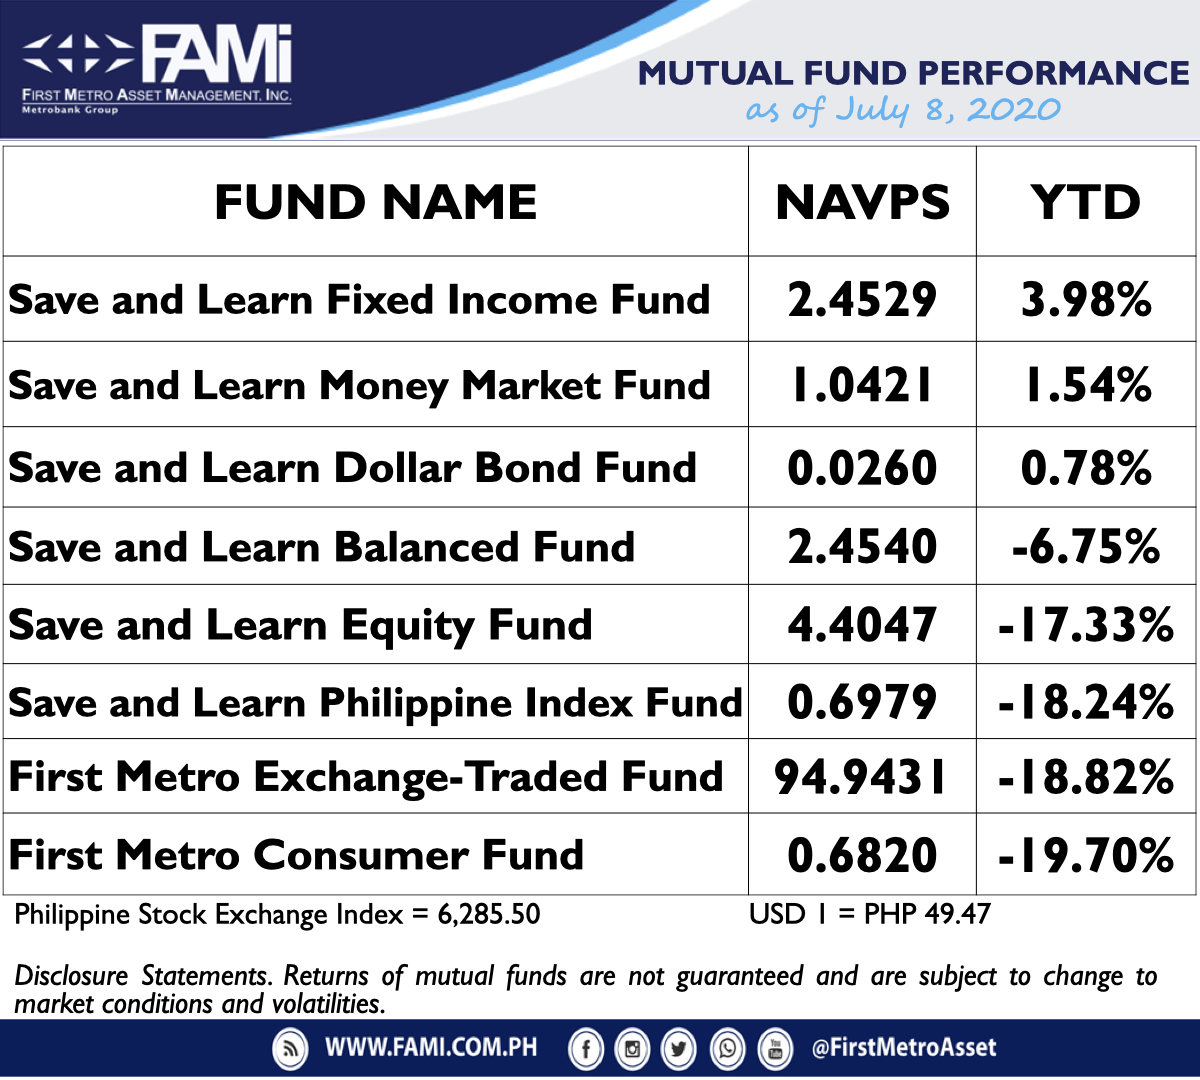 Here's our latest First Metro Asset Funds NAVPS as of July 8, 2020  #choosetoinvest #choosewisely #chooseFAMI https://t.co/4OXaNrra0X